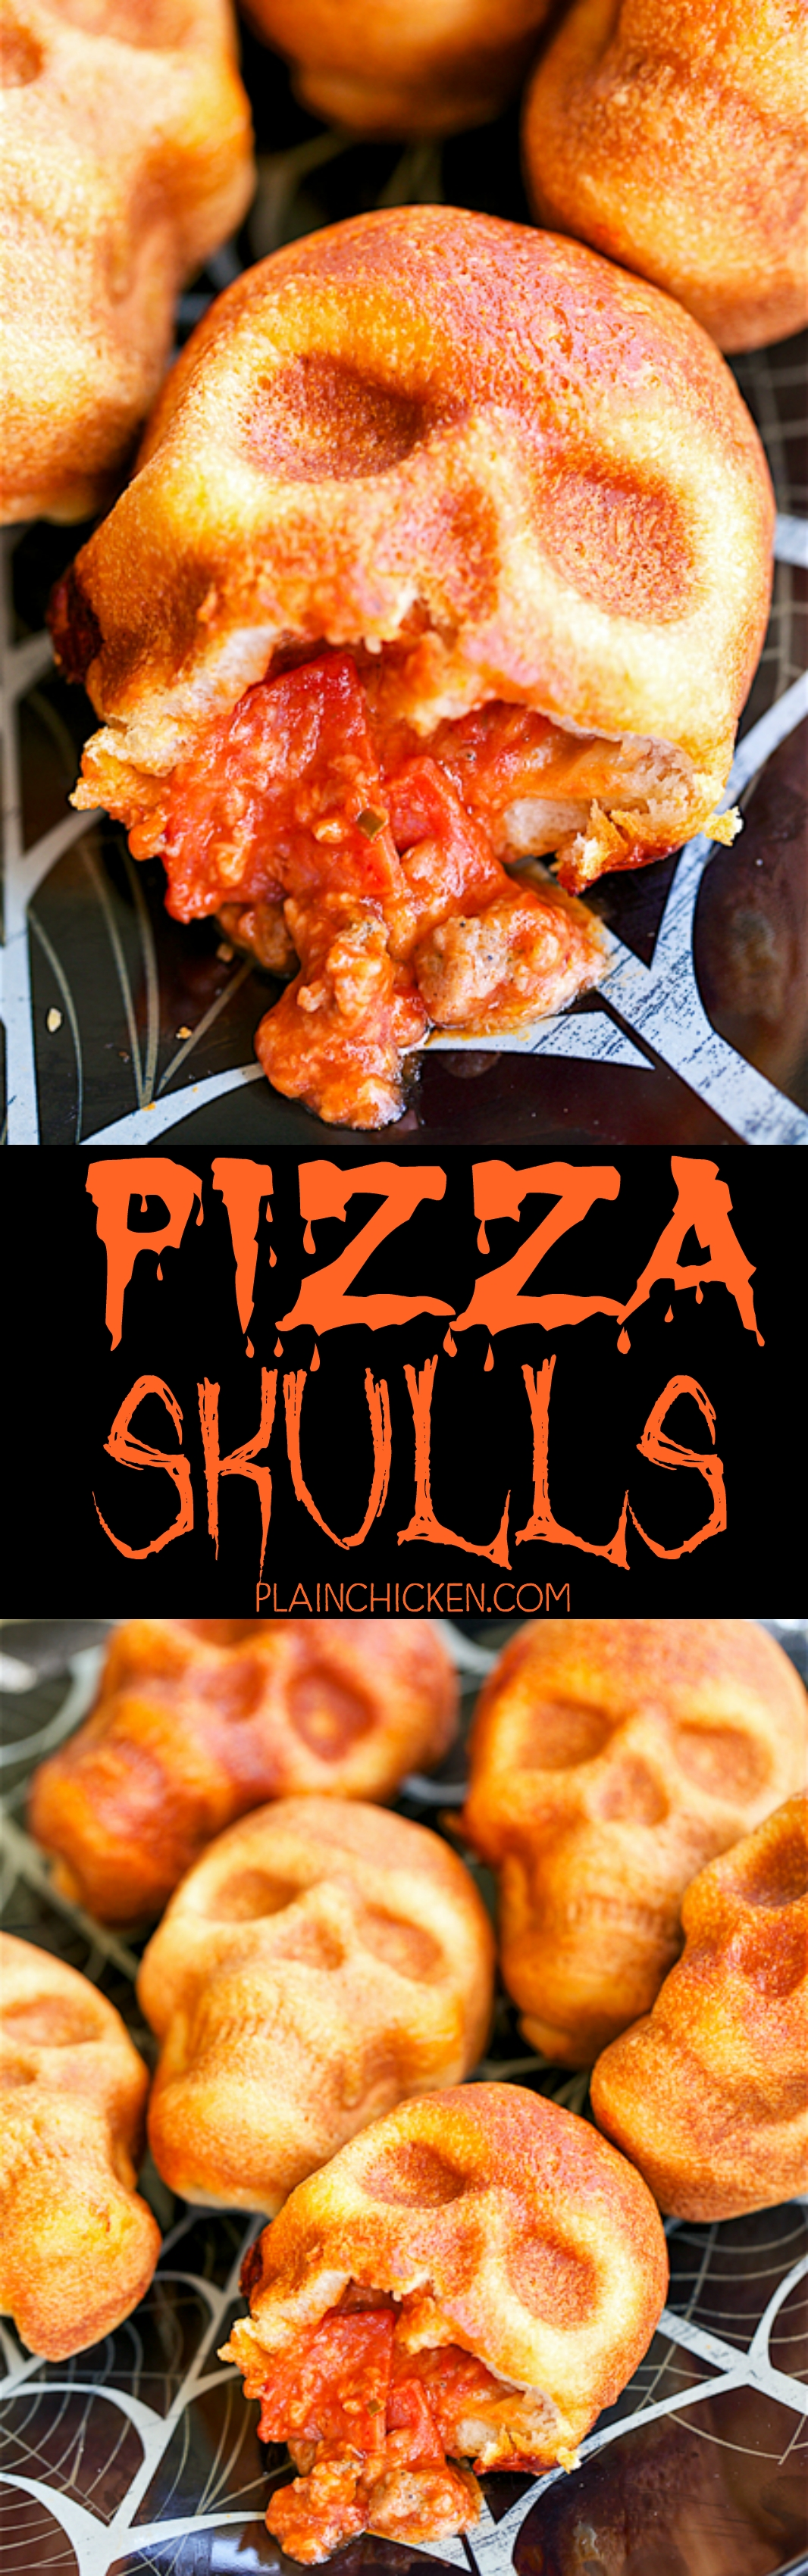 10 Unique Walking Dead Party Food Ideas pizza skulls pizza pockets baked in a skull pan so easy can